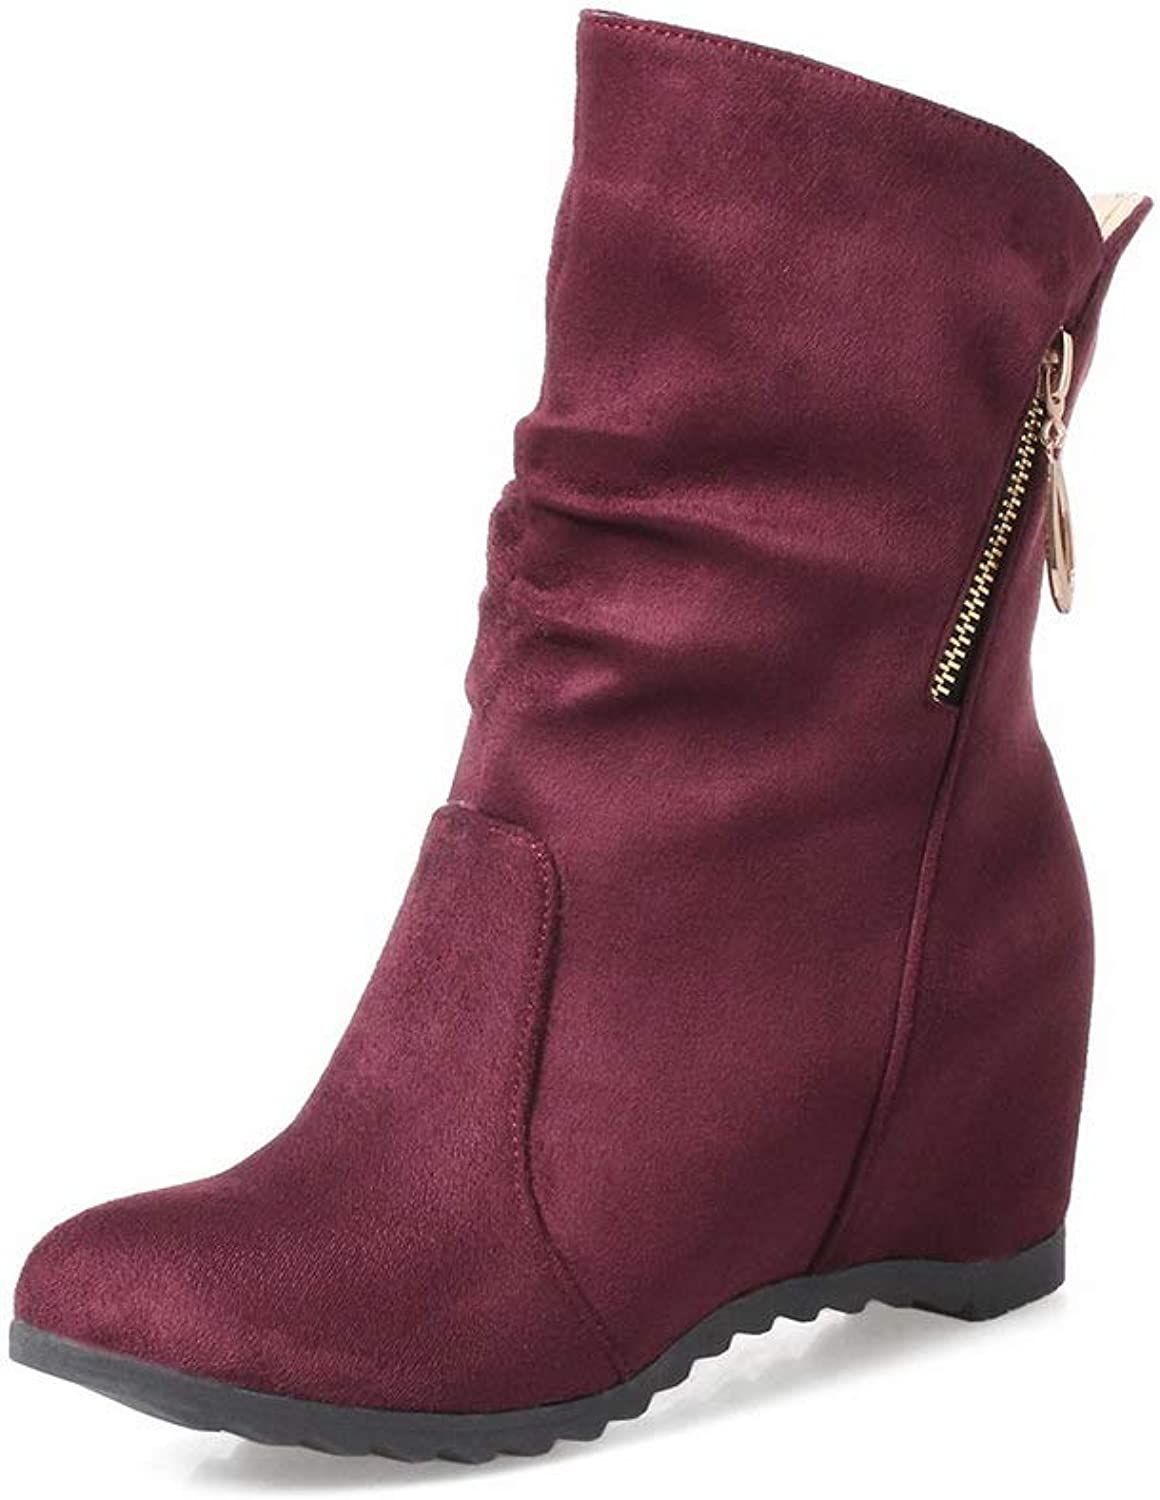 BalaMasa Womens Ruched Charms Solid Leather Boots ABL10836